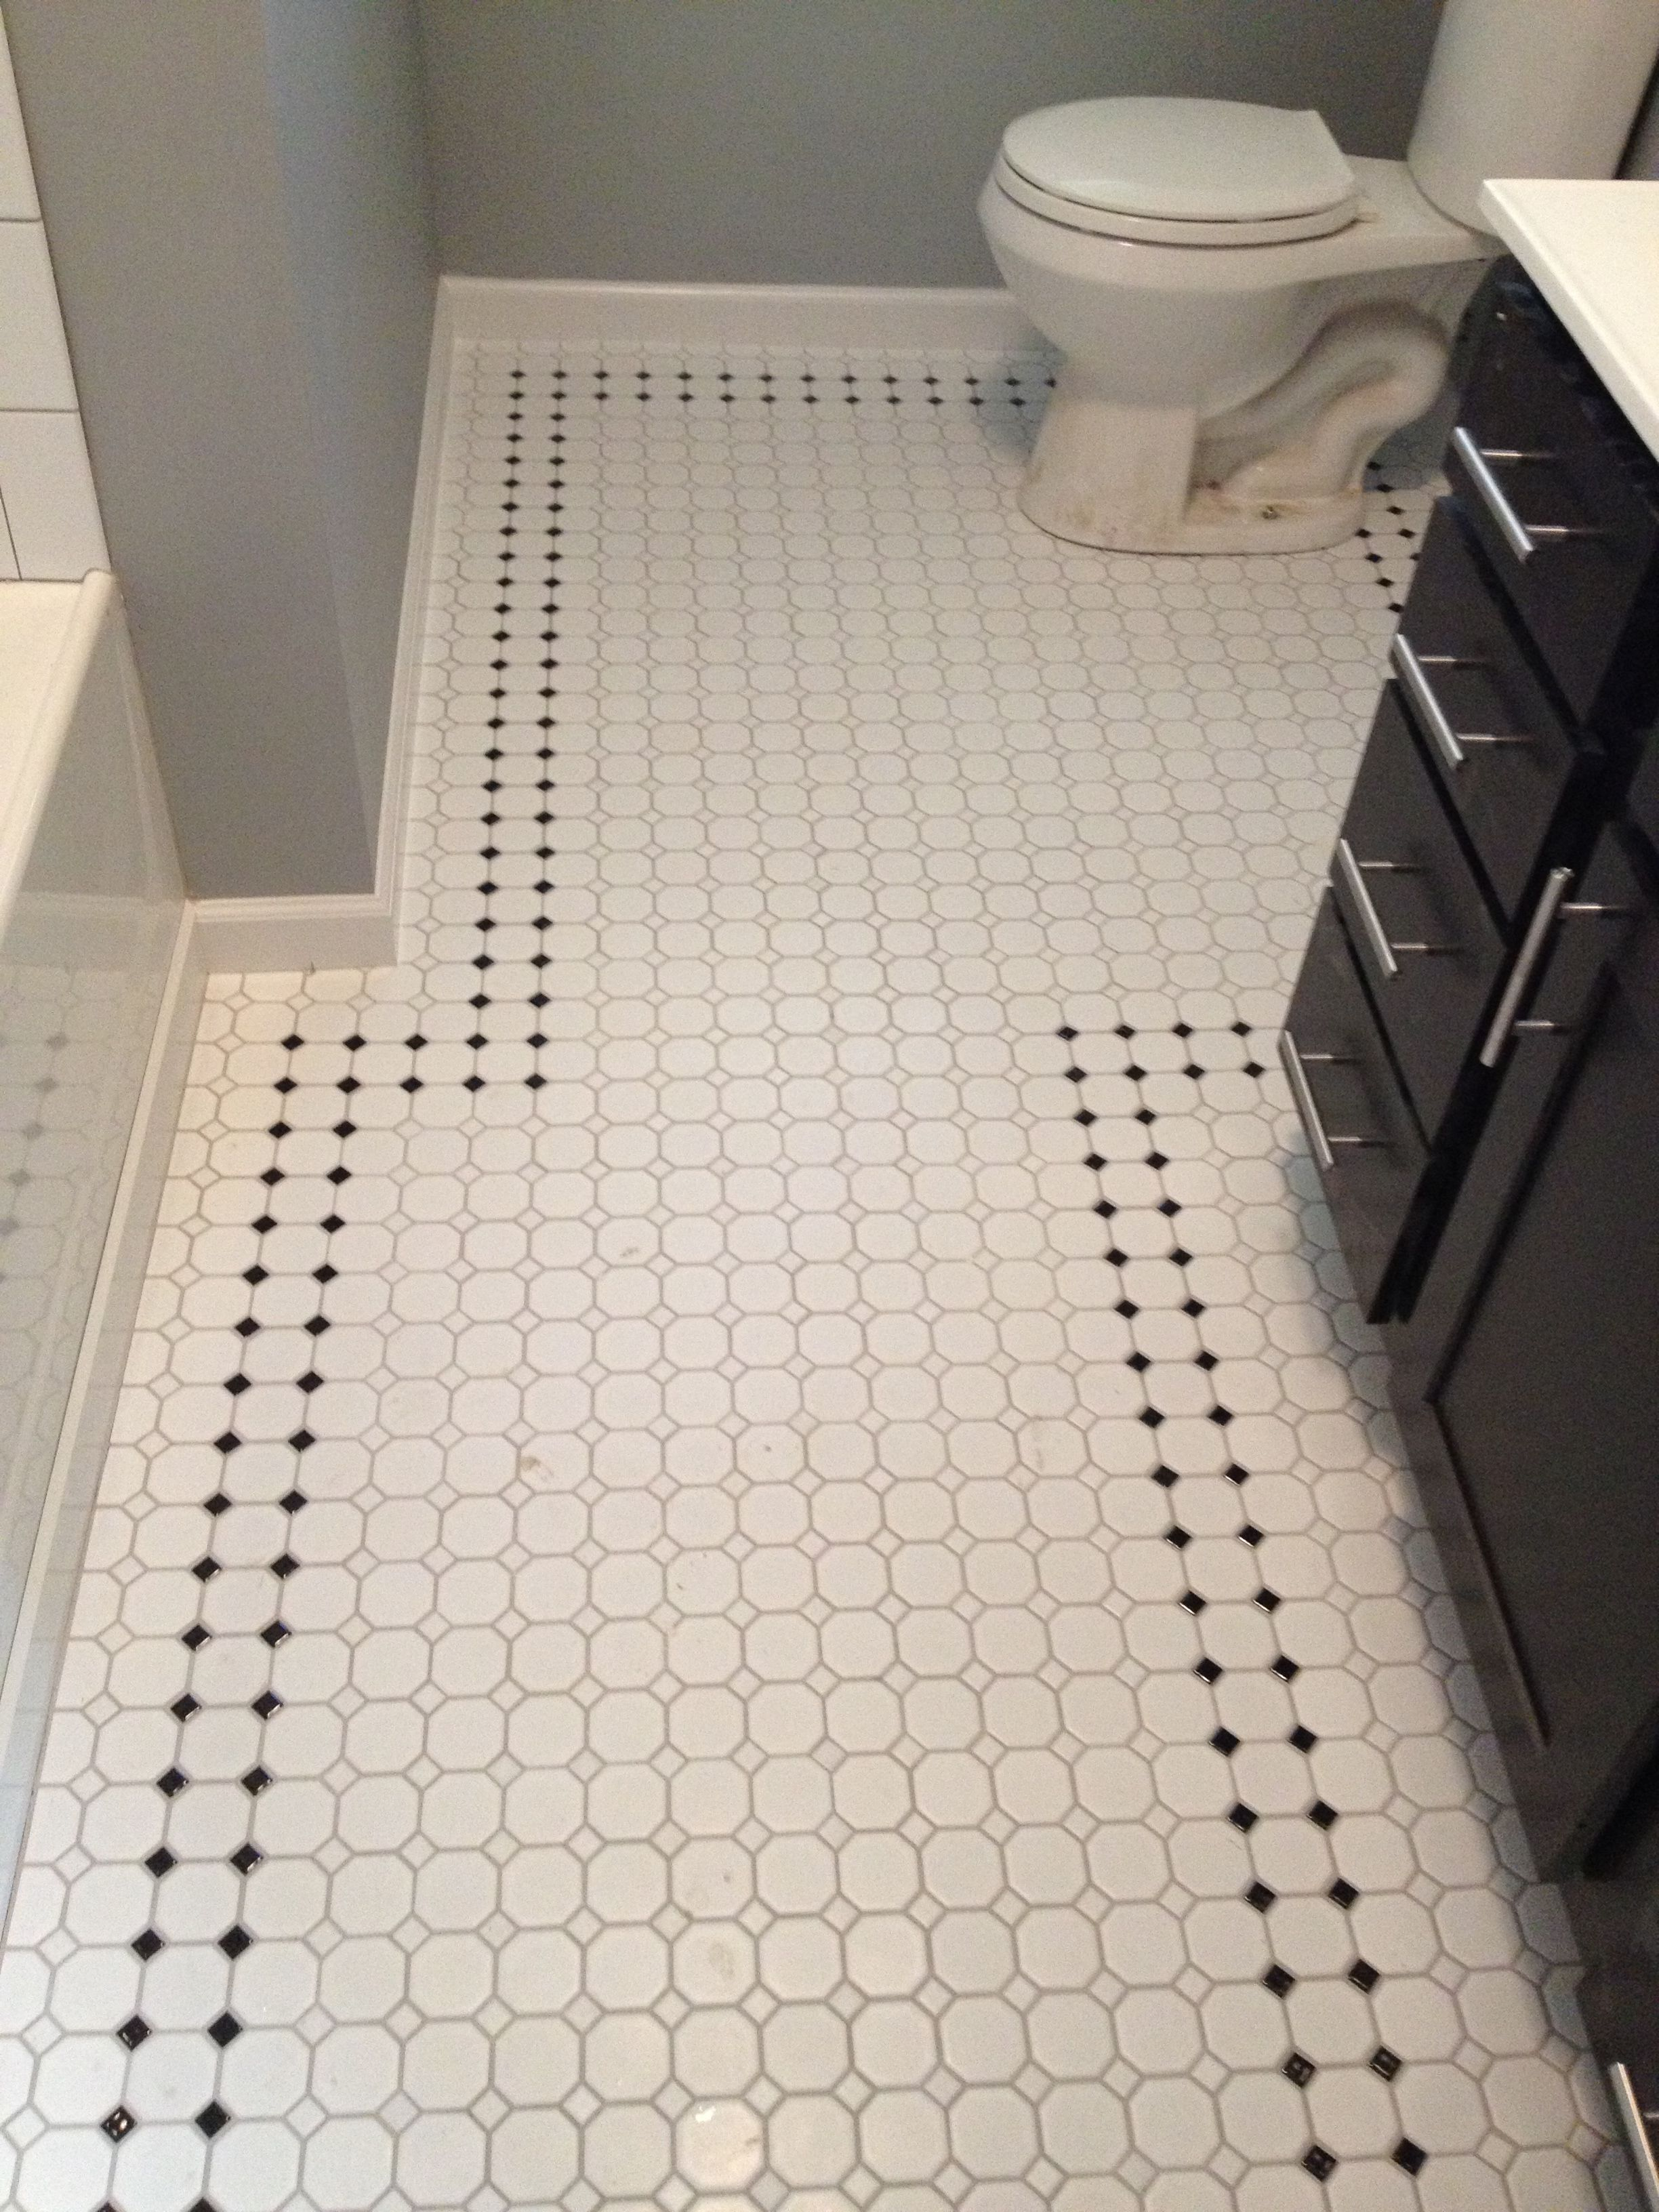 Retro inspired octagon and dot bathroom floor tile. | Work by ...